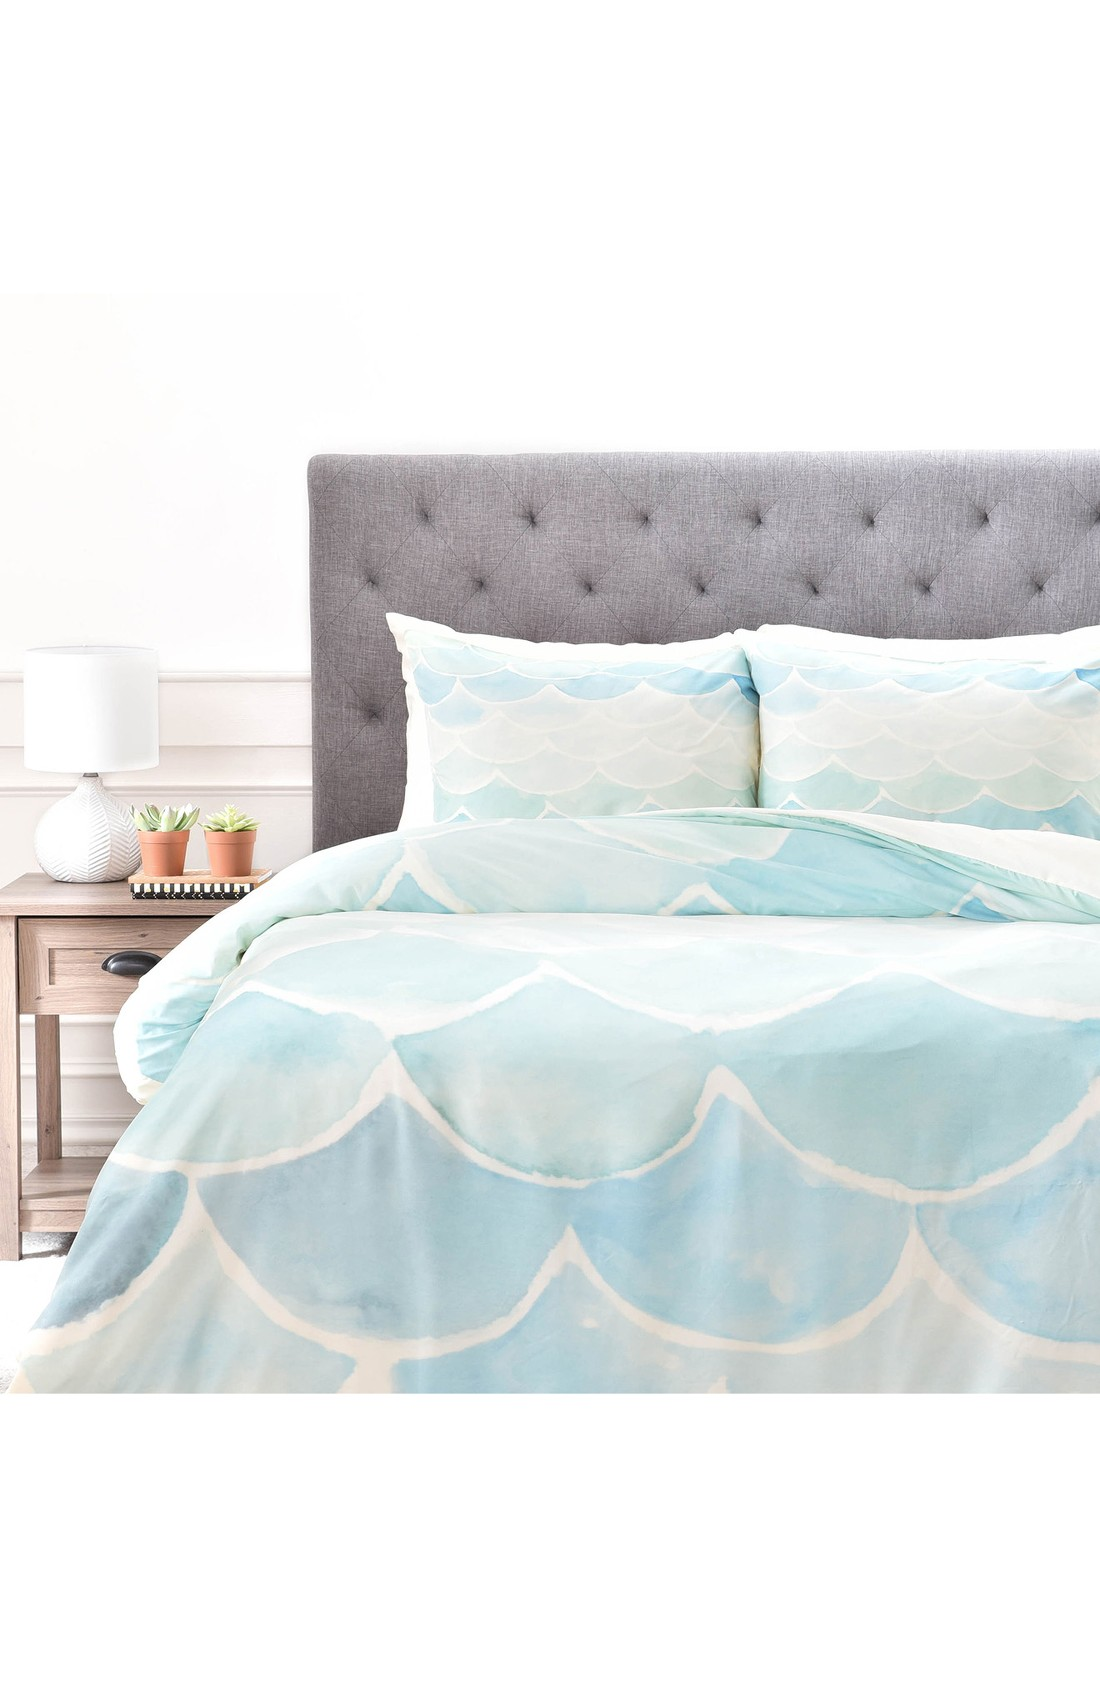 Using White Duvet Cover Queen for Gorgeous Bedroom Decoration Ideas: White Duvet Cover Queen | White Queen Duvet Cover Set | Cheap Duvet Covers